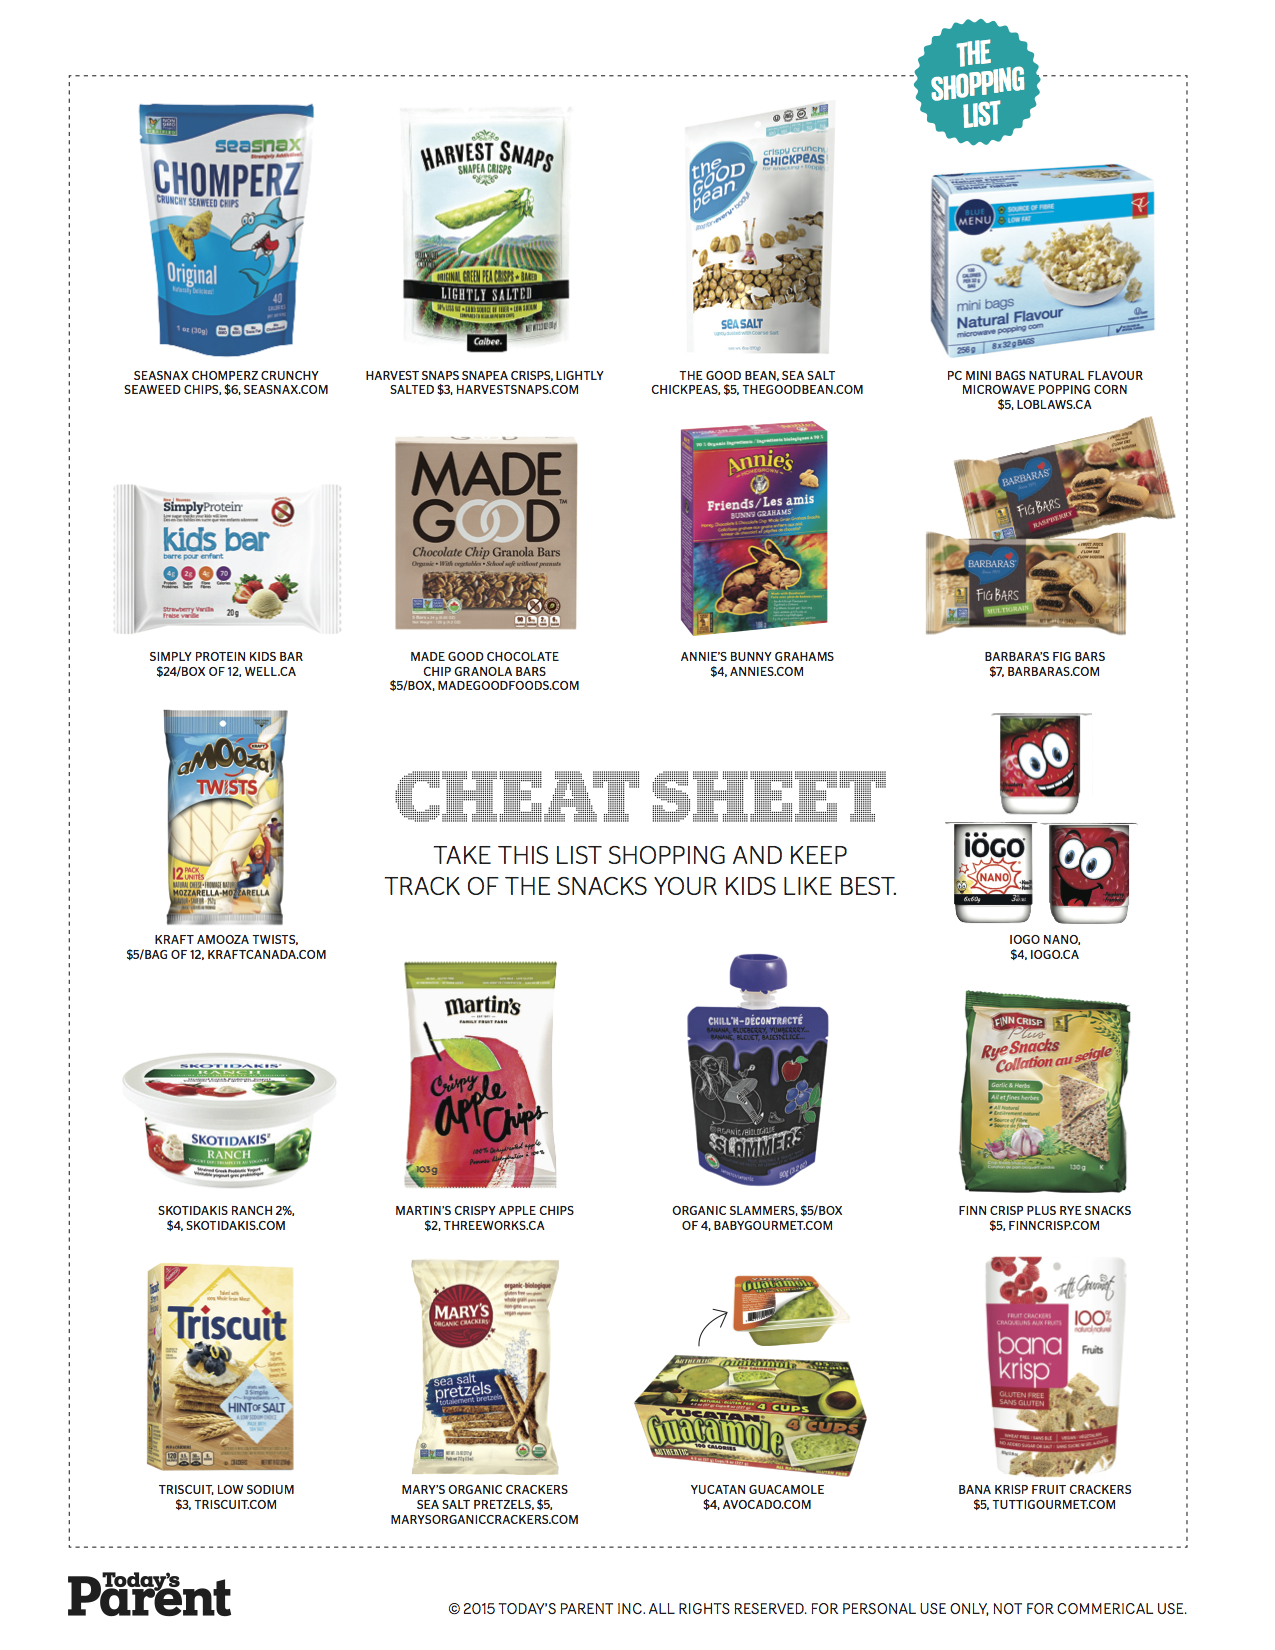 Print This Healthy Store Bought Snacks Shopping List